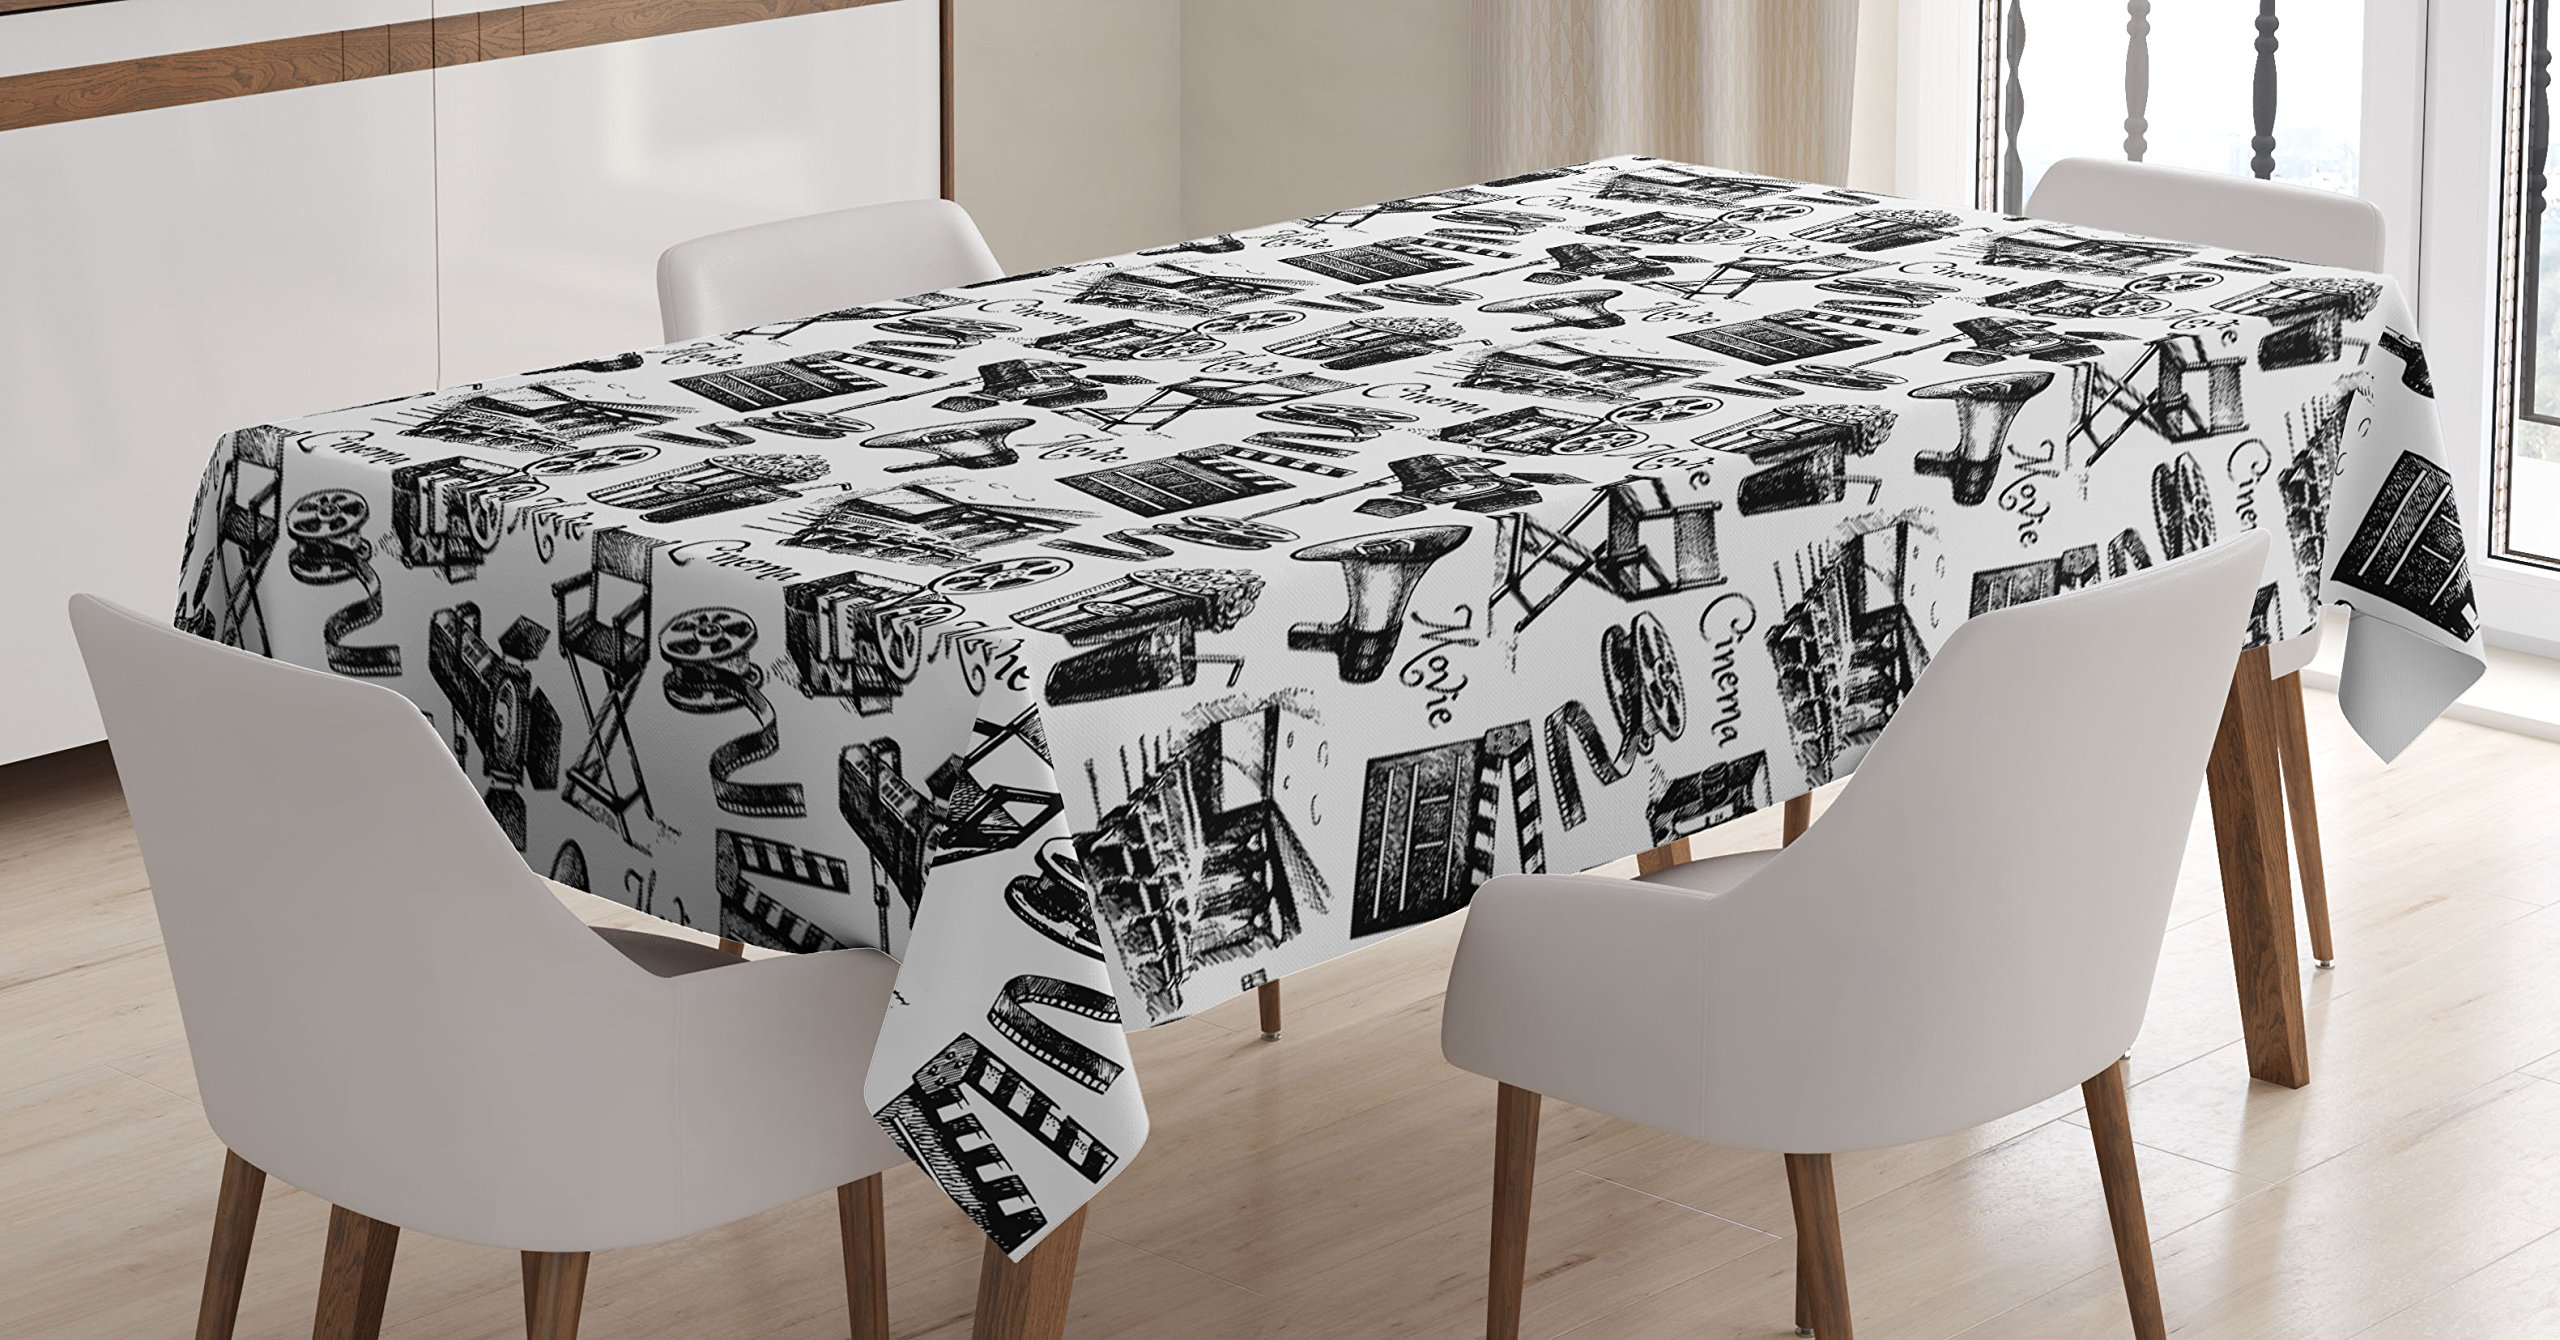 Ambesonne Movie Decor Tablecloth by, Vintage Artful Film Cinema Icons Motion Lighting Camera Action Record Graphic, Dining Room Kitchen Rectangular Table Cover, 60W X 90L Inches, Black White